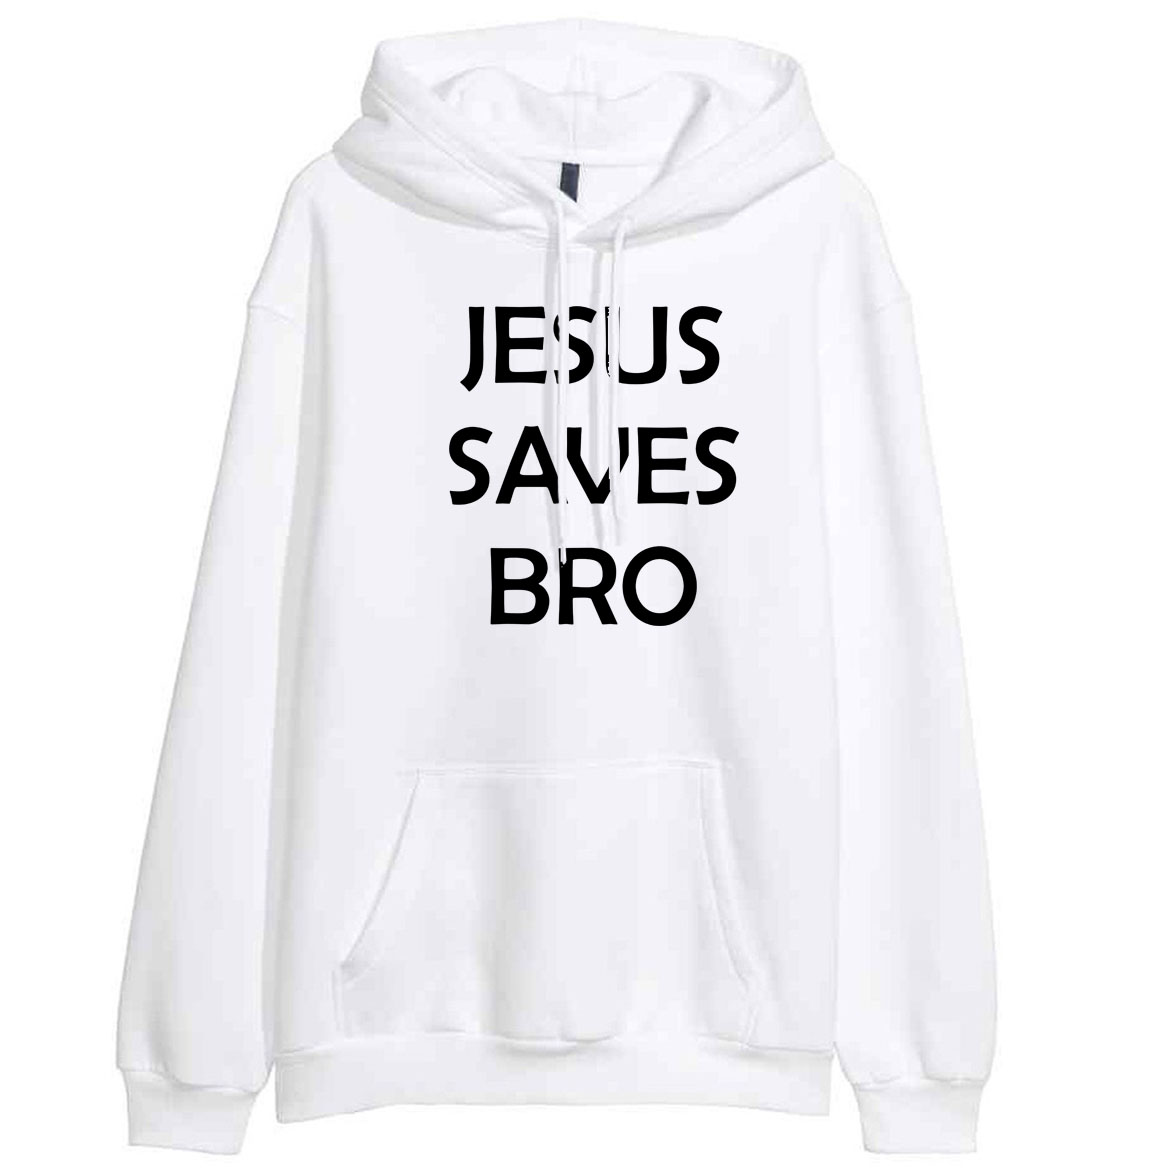 US $11.1 39% OFF|JESUS SAVES BRO Brand Clothing Print Women's Hoodies 2019 Spring Fleece Winter Sweatshirt For Women Tracksuits Harajuku Pullover in